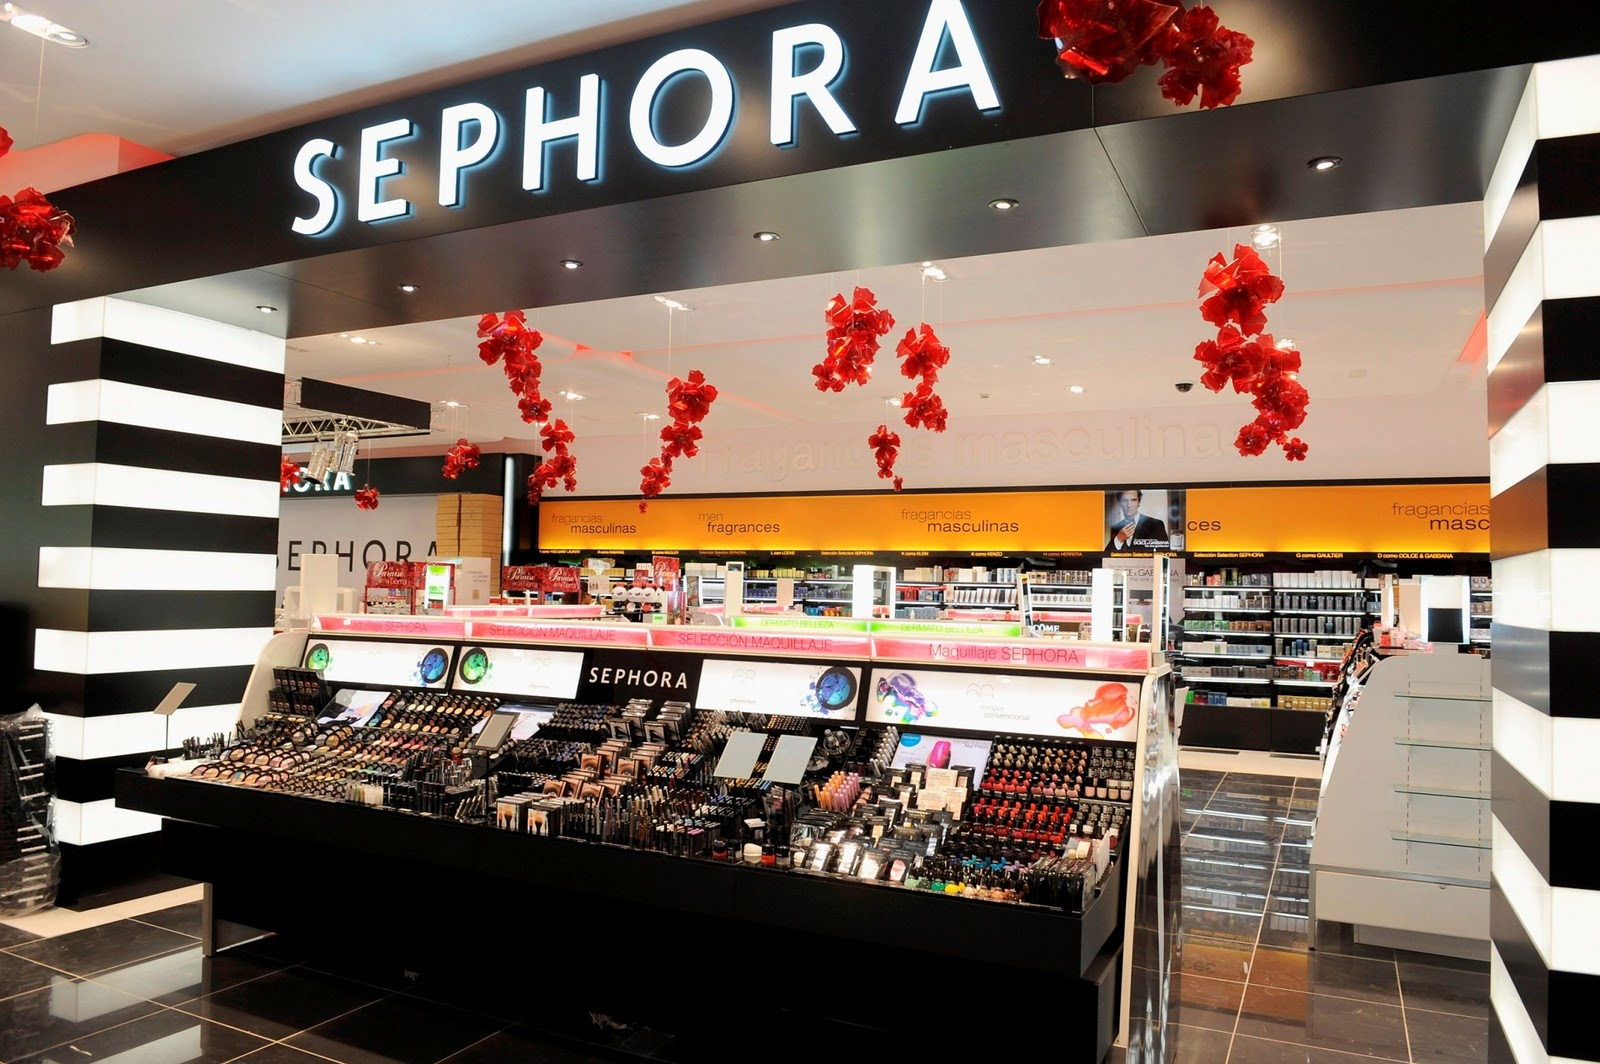 Shopping Tips for Sephora: 1. Whether you're a big fan of Sephora or an occasional shopper, the Beauty Insider program delivers stellar rewards like bonus point events, birthday gifts and exclusive deals. 2. All lipsticks are included in the Sephora best price guarantee.